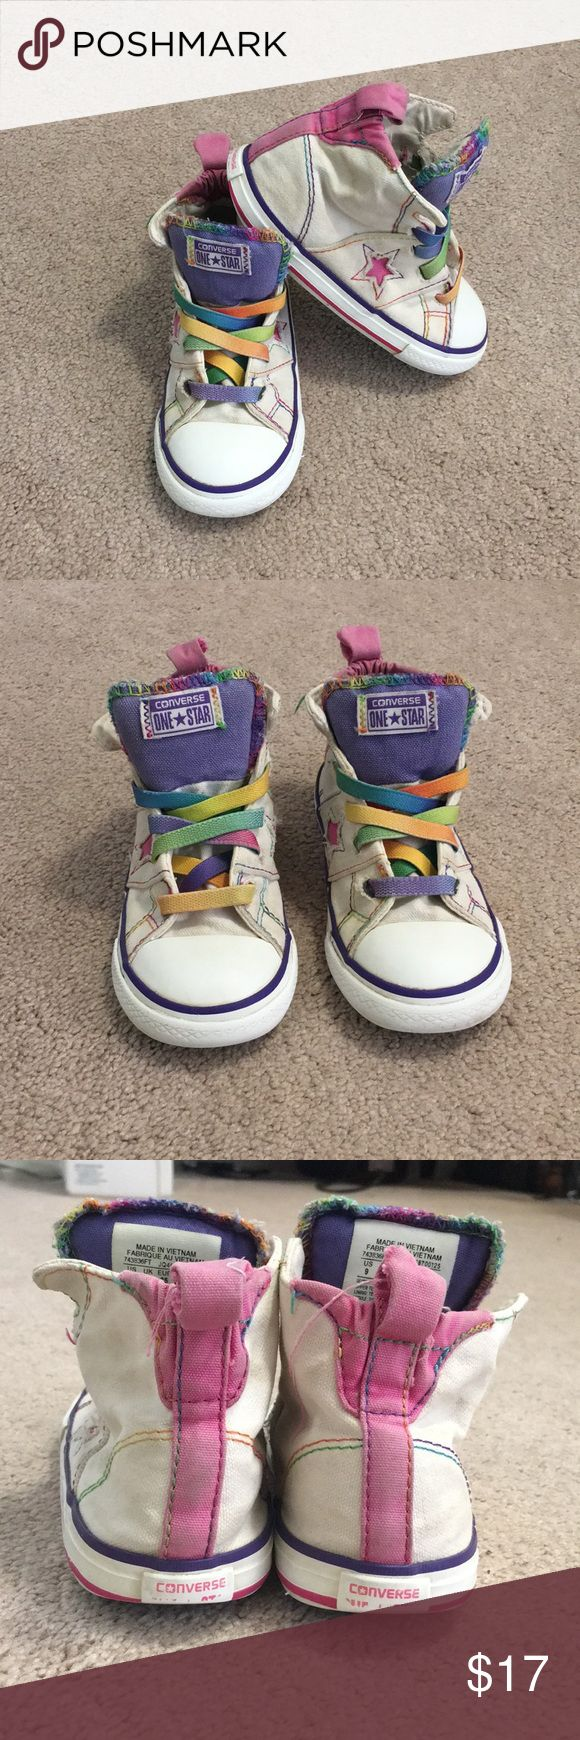 Converse One Star Toddler Hi-Tops - sz 9 Your little girl will have lots of fun in these funky White Converse hi-tops with rainbow laces! Elastic laces make it easy for your little to take her shoes on and off by herself.  Plenty of wear left and they look great with fun tights and tutu's!  Bundle and save bag! No trades! Reasonable offers considered! Questions? Ask away! Converse Shoes Sneakers